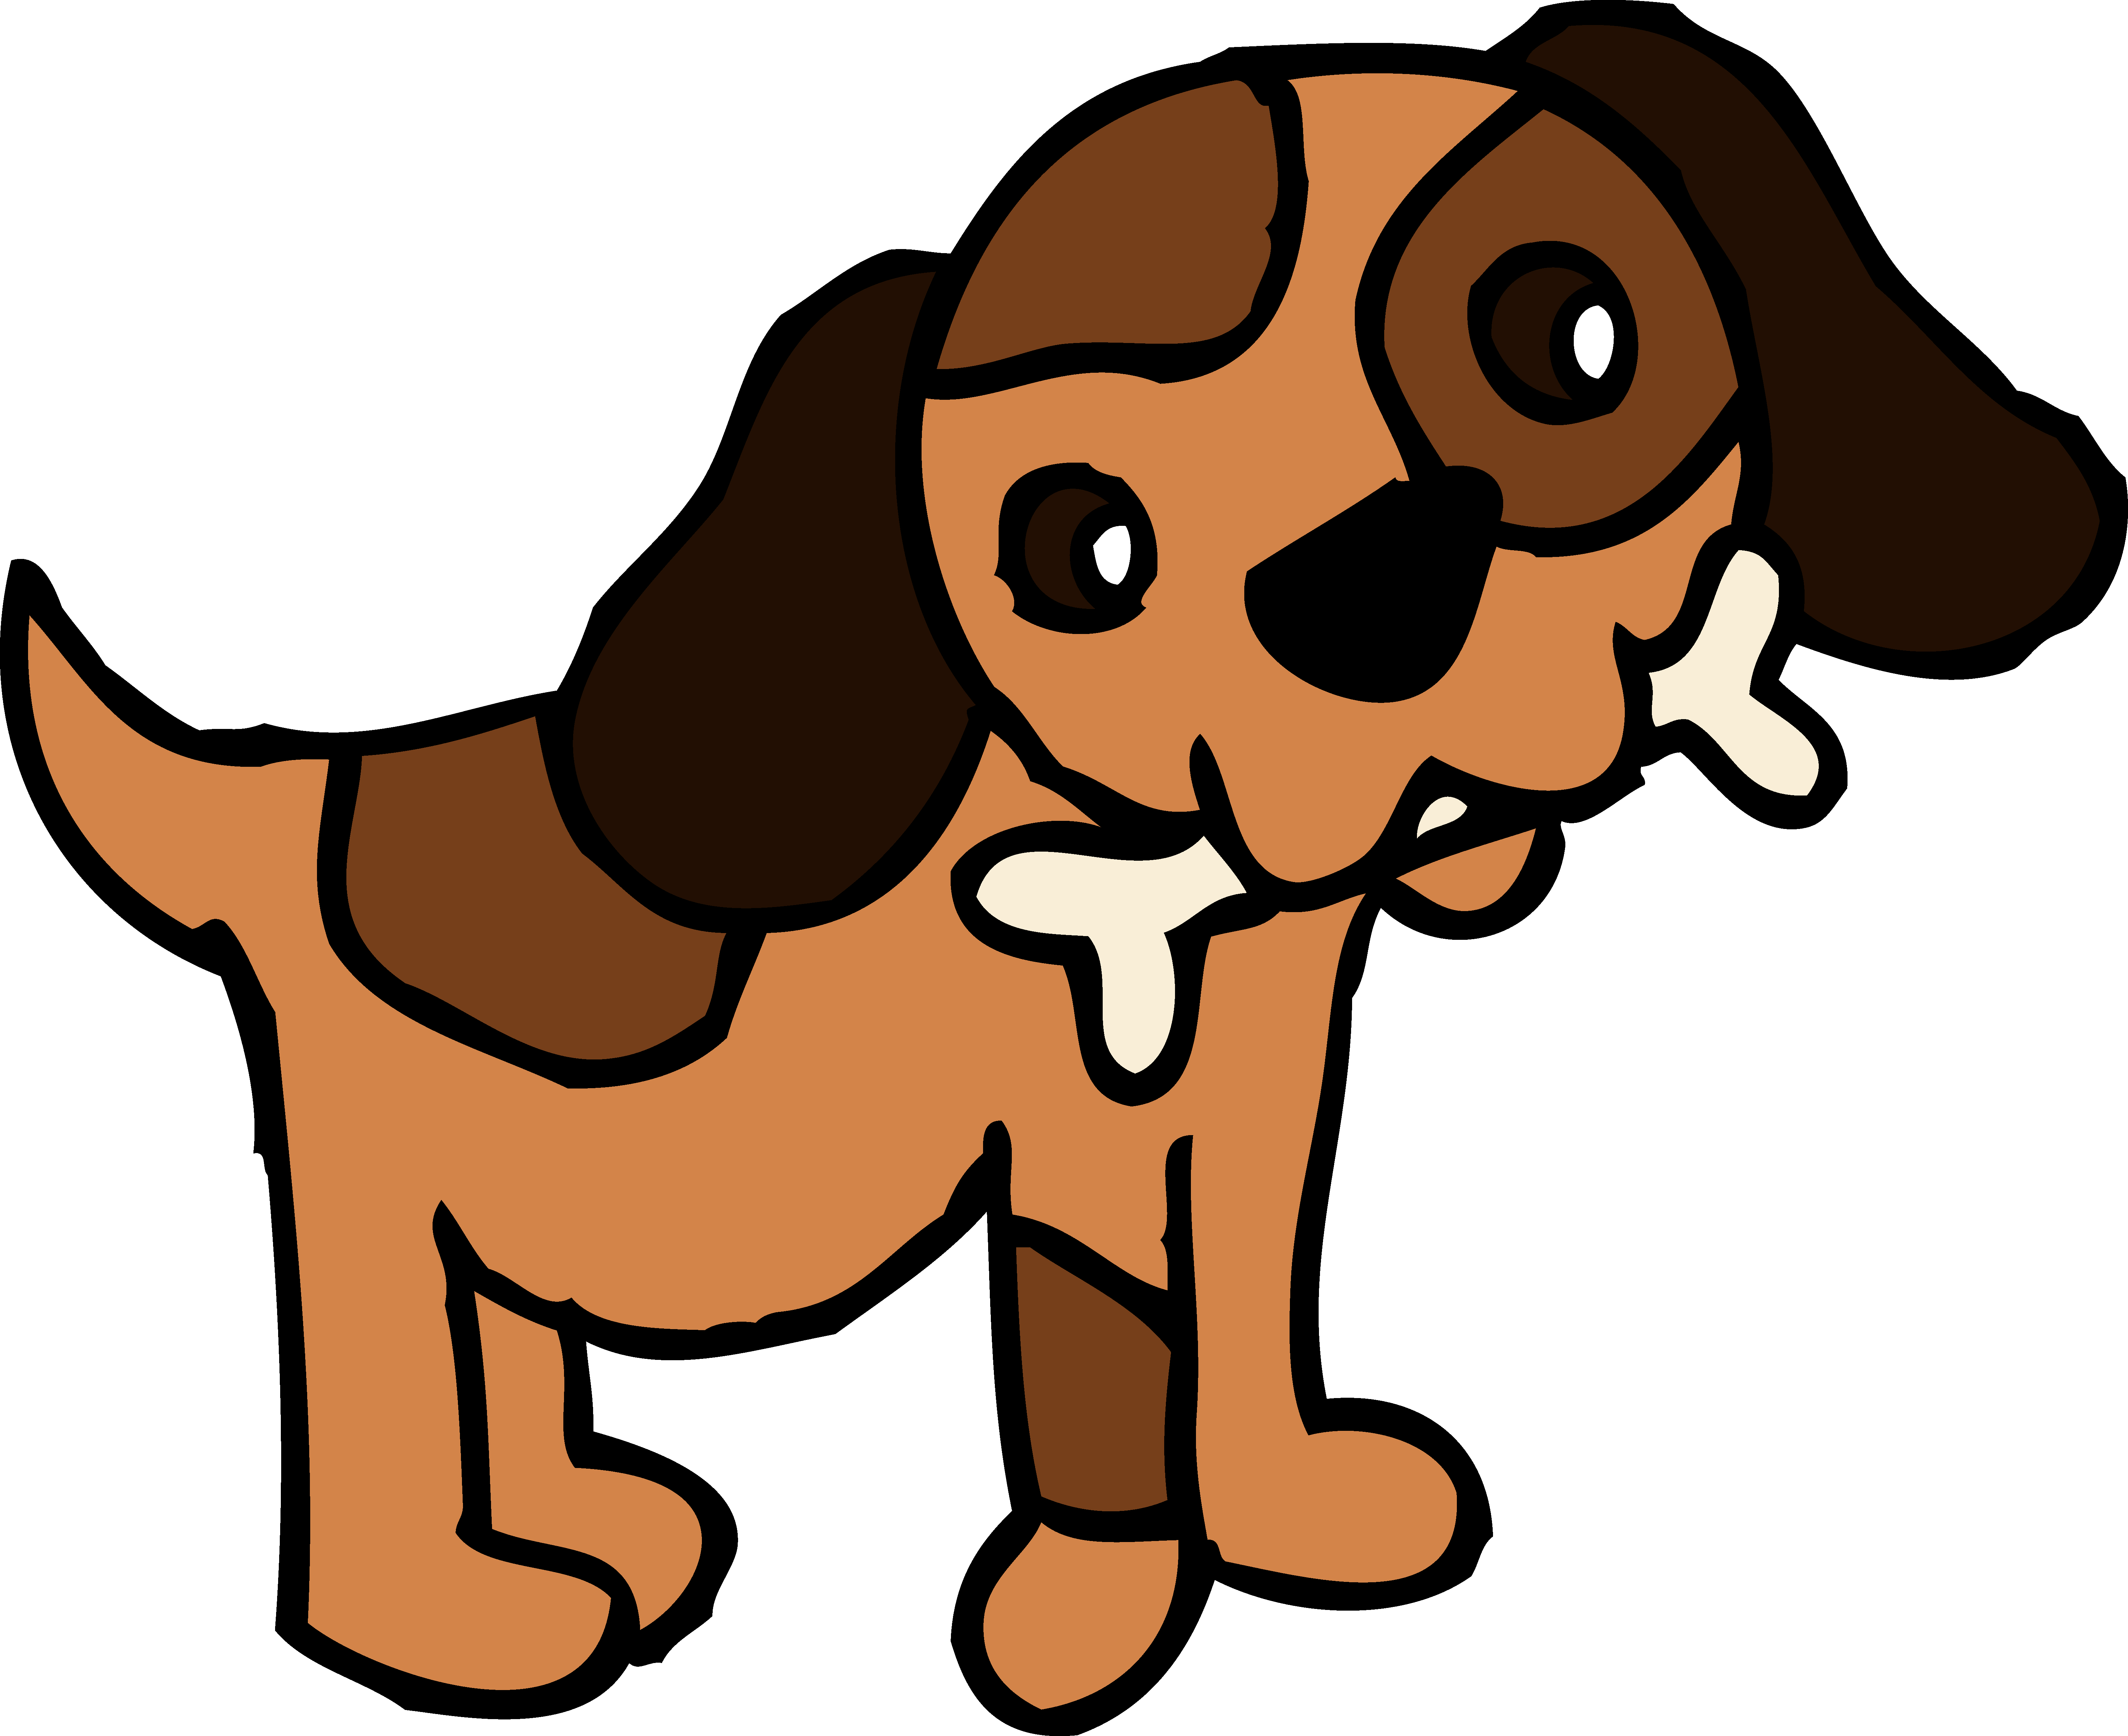 puppy dog pals clipart at getdrawings com free for personal use rh getdrawings com puppy dog clipart puppy dog pals clipart